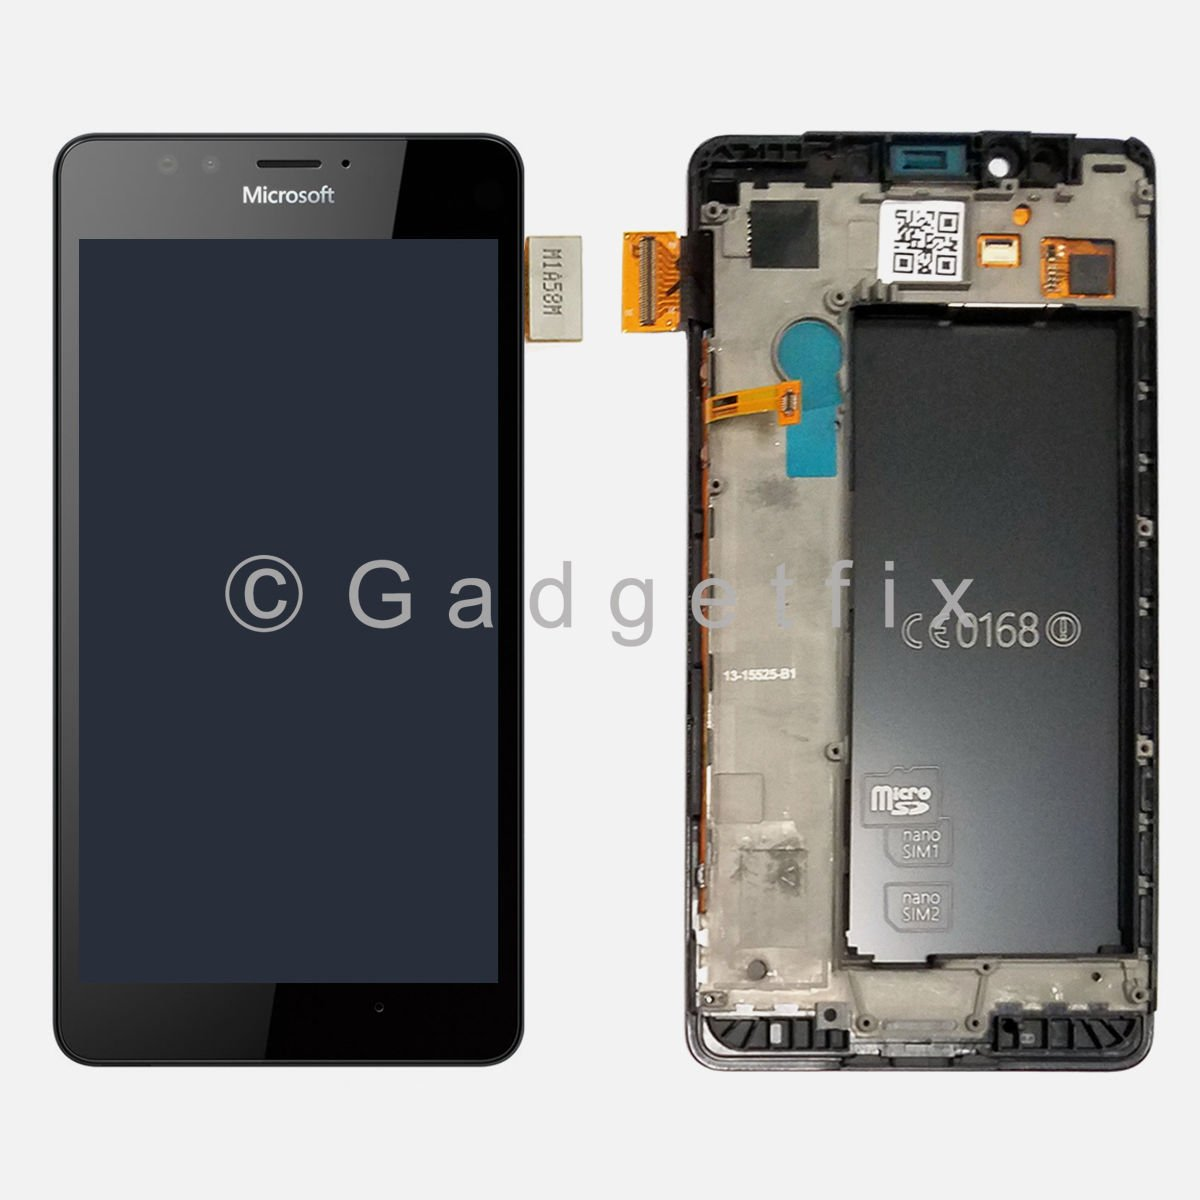 US Microsoft Lumia 950 Display LCD Screen Touch Screen Digitizer + Frame Housing